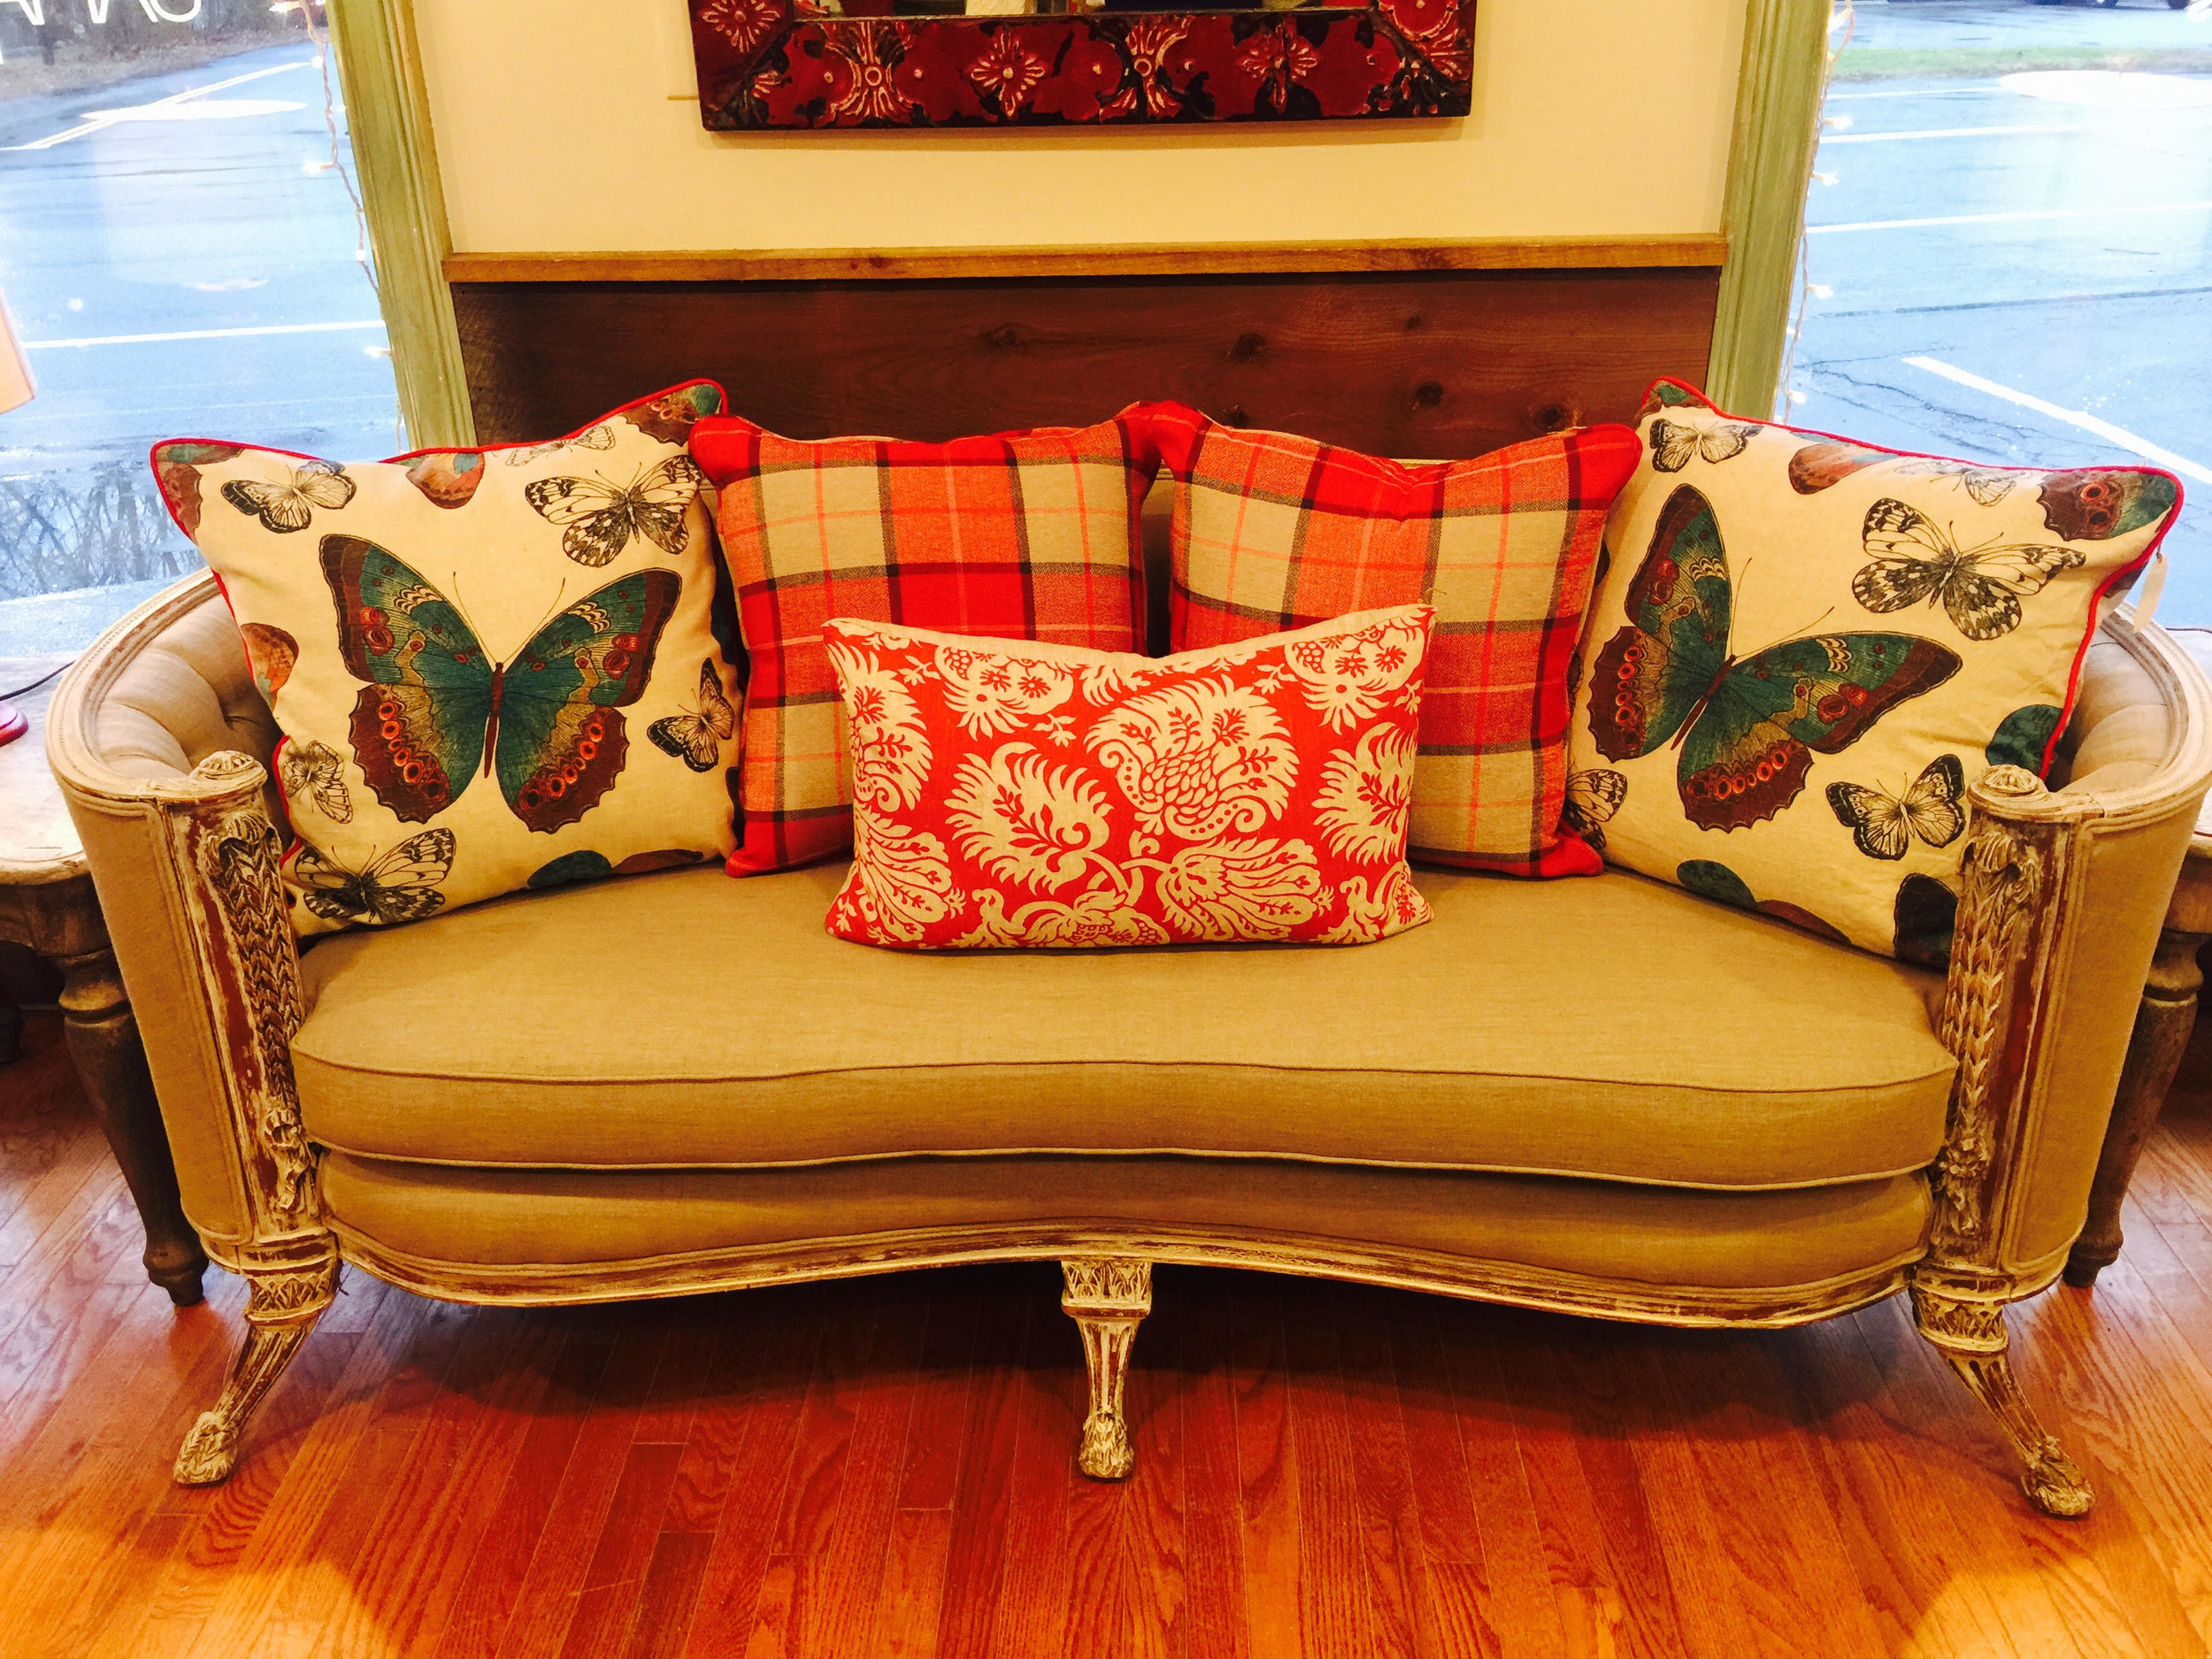 1920's couch 1.jpg